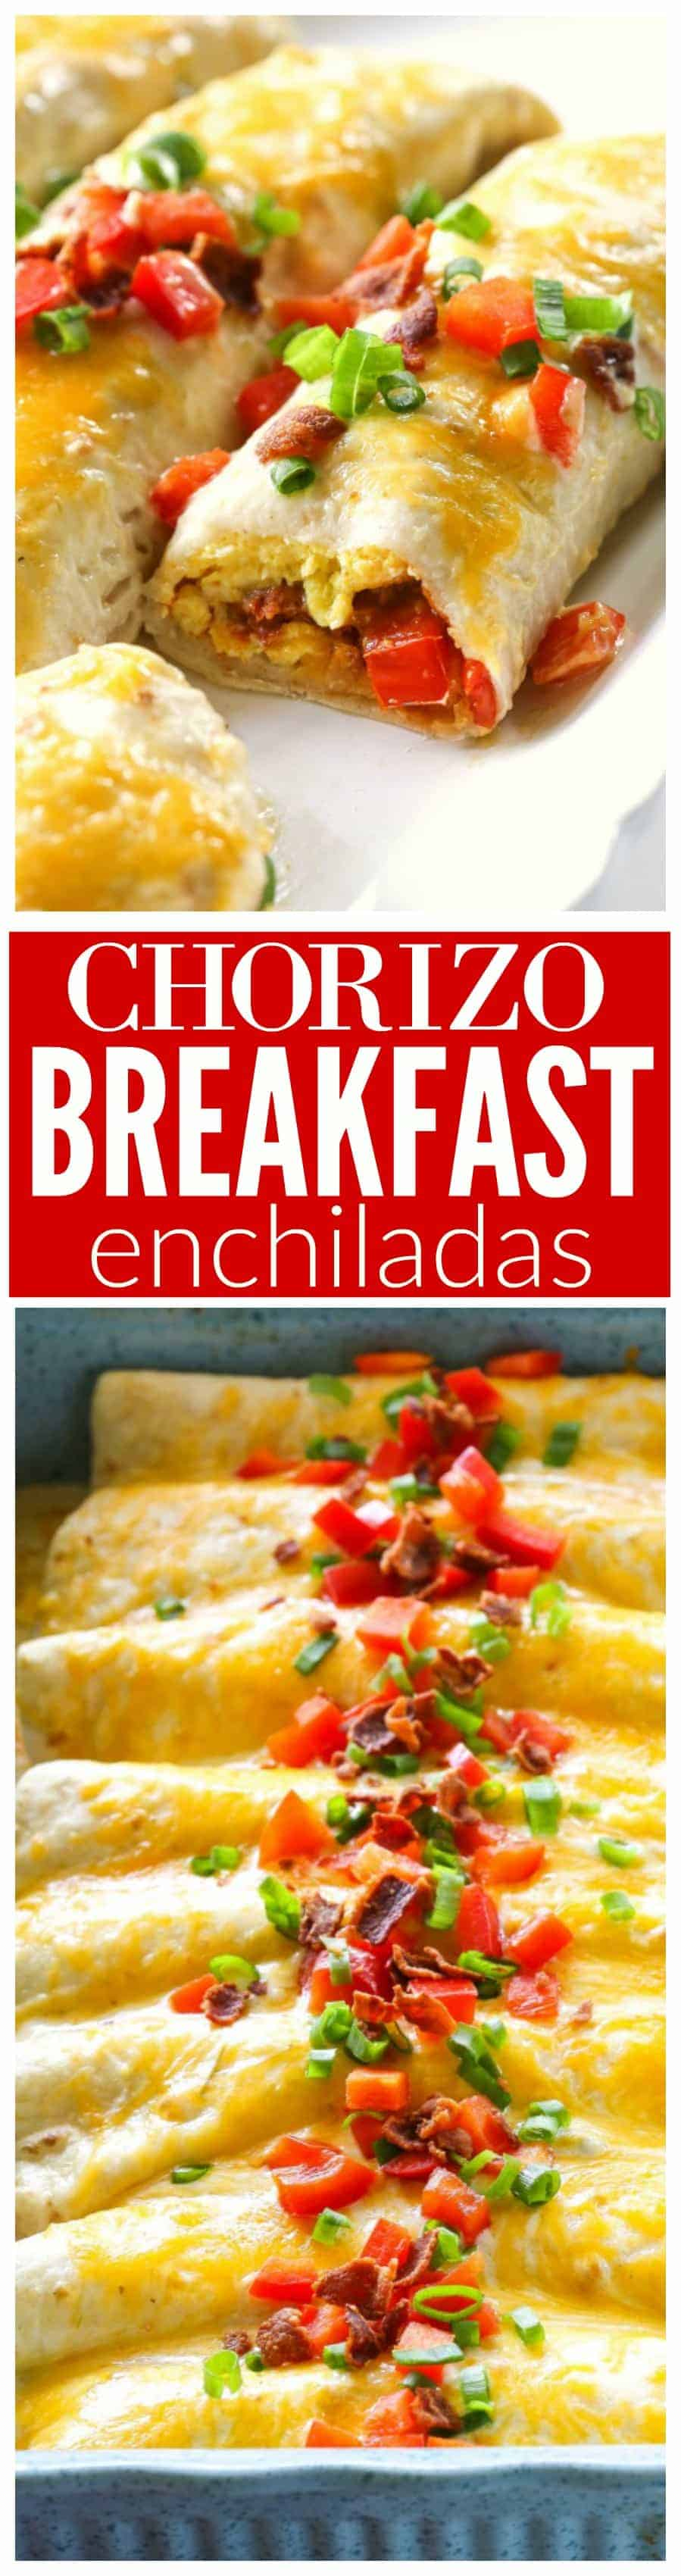 These Chorizo Breakfast Enchiladas are filled with eggs, chorizo, hash browns and topped with bacon! #chorizo #breakfast #enchiladas #recipe #mexican